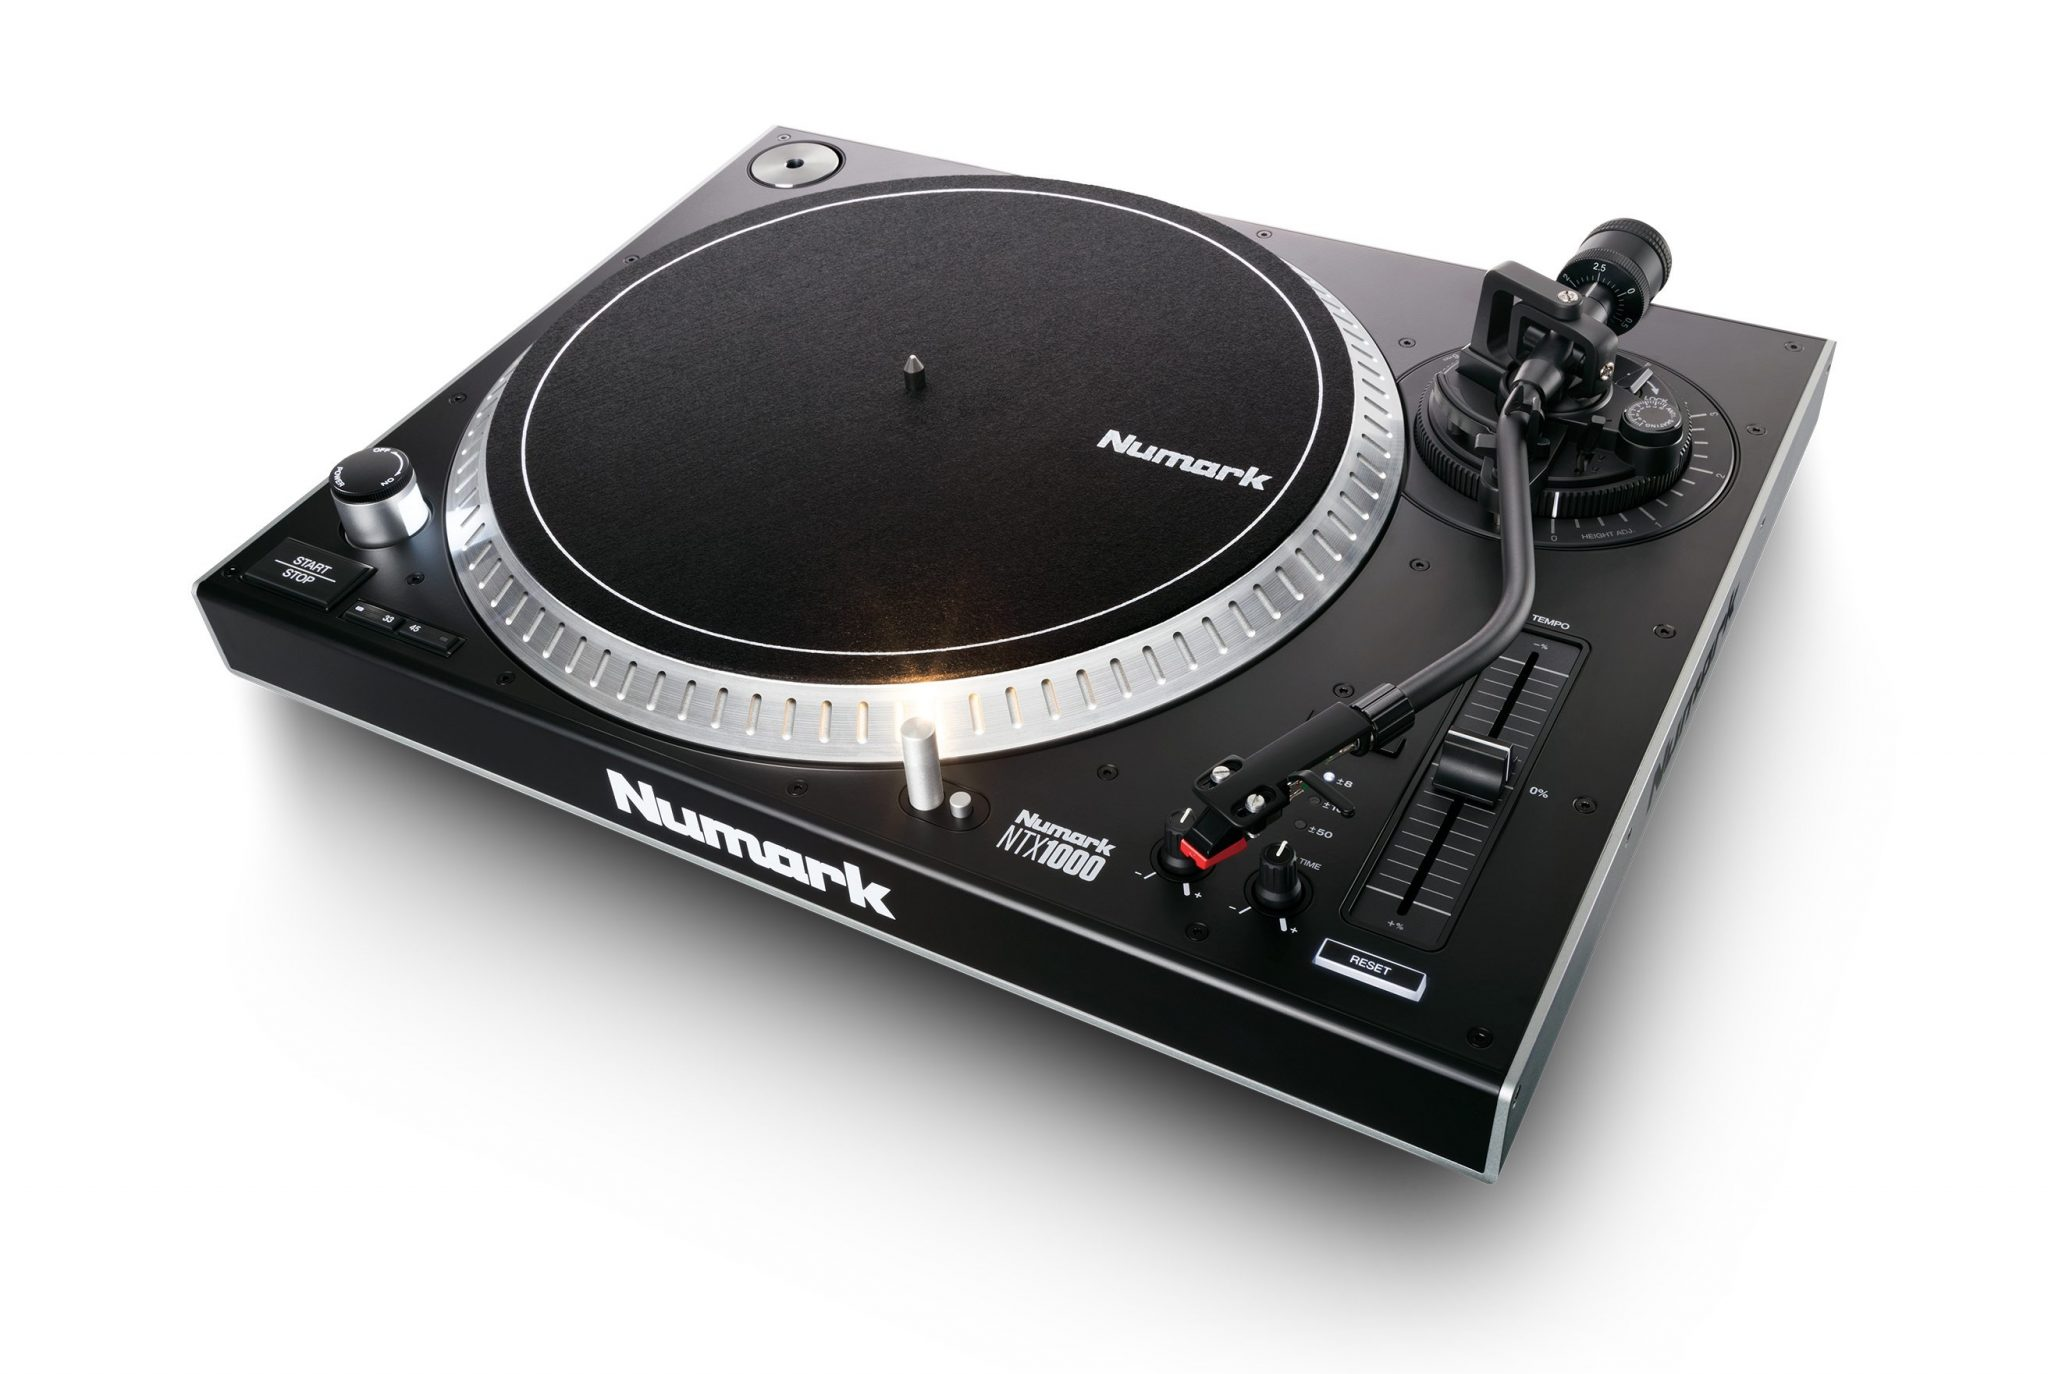 Not like the rest — Numark's NTX1000 turntable | DJWORX